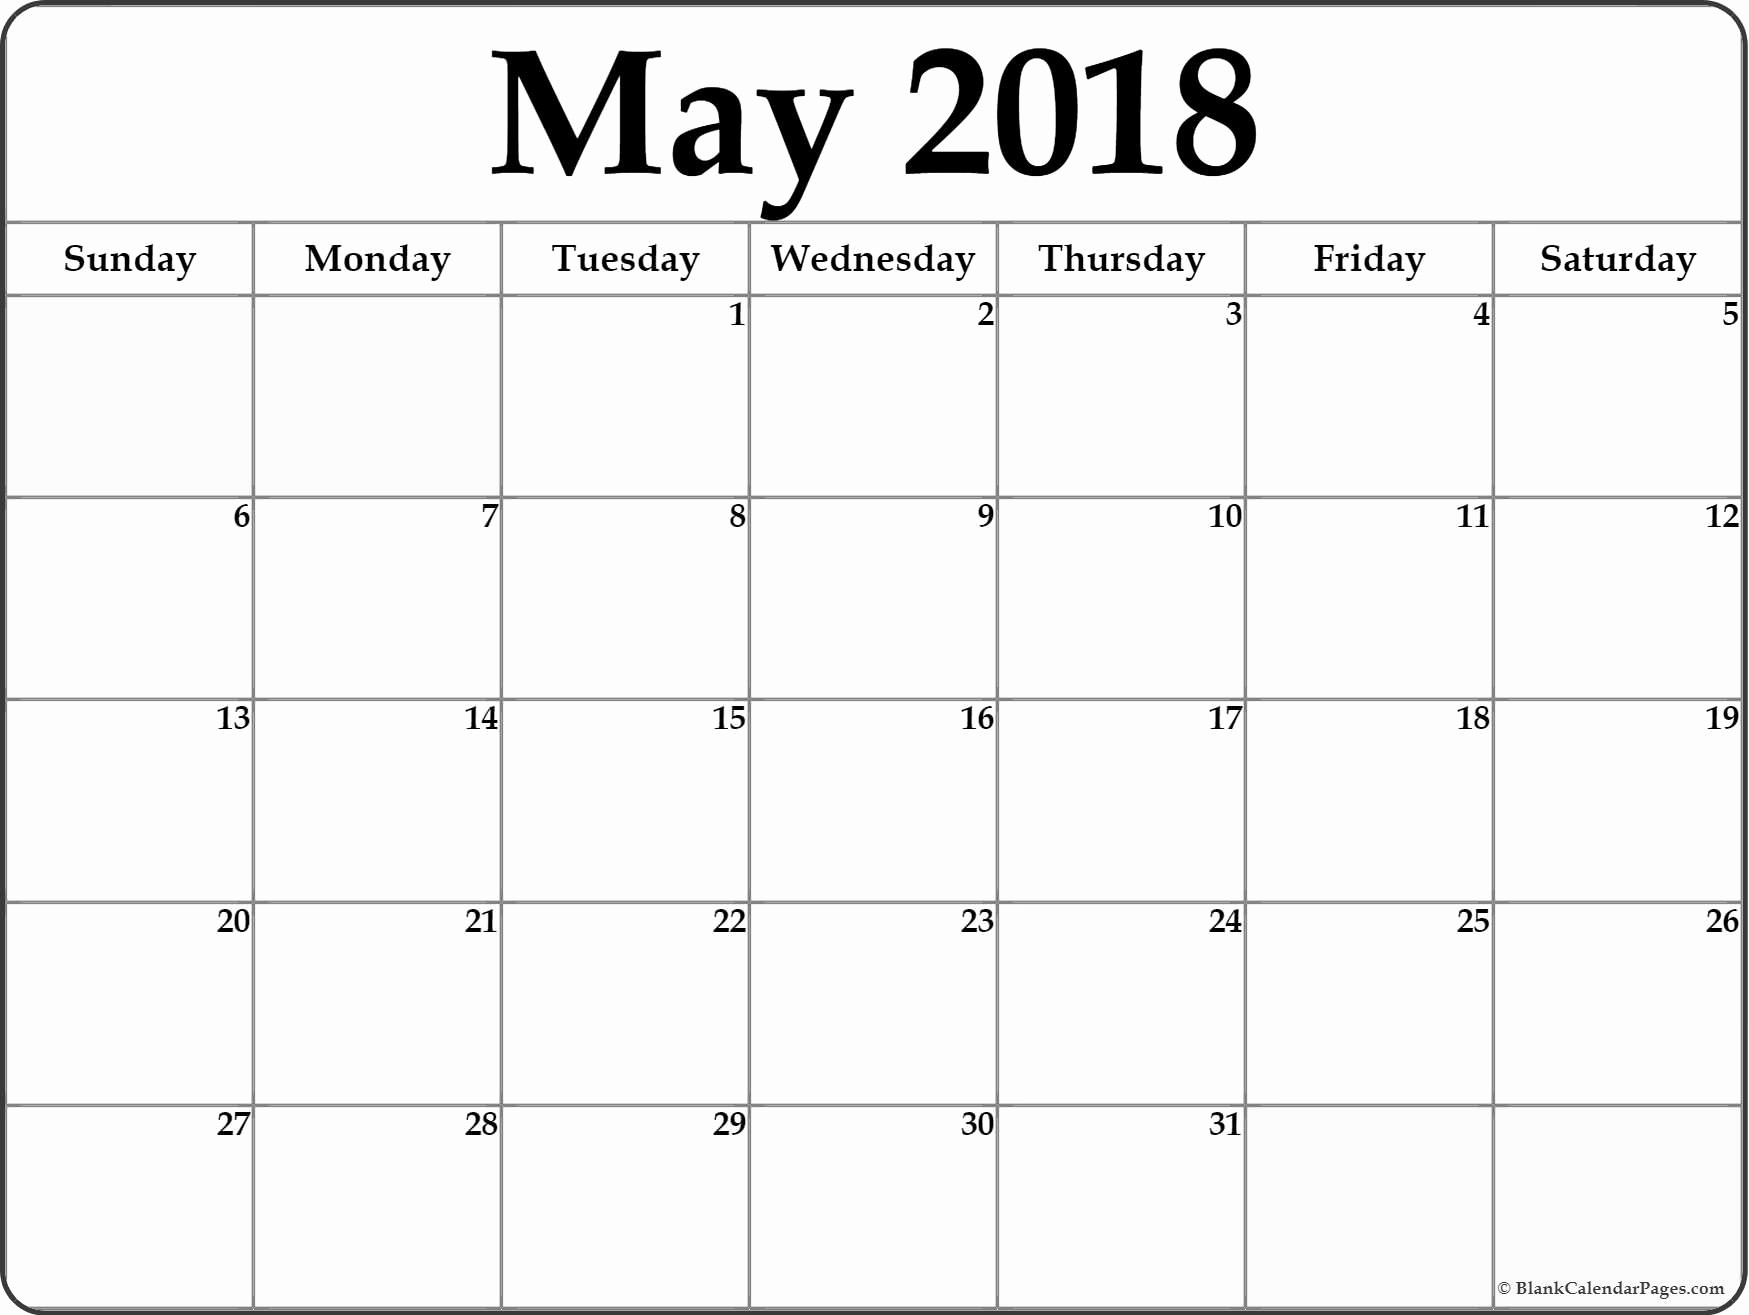 Blank May 2018 Calendar Printable Lovely May 2018 Blank Calendar Collection